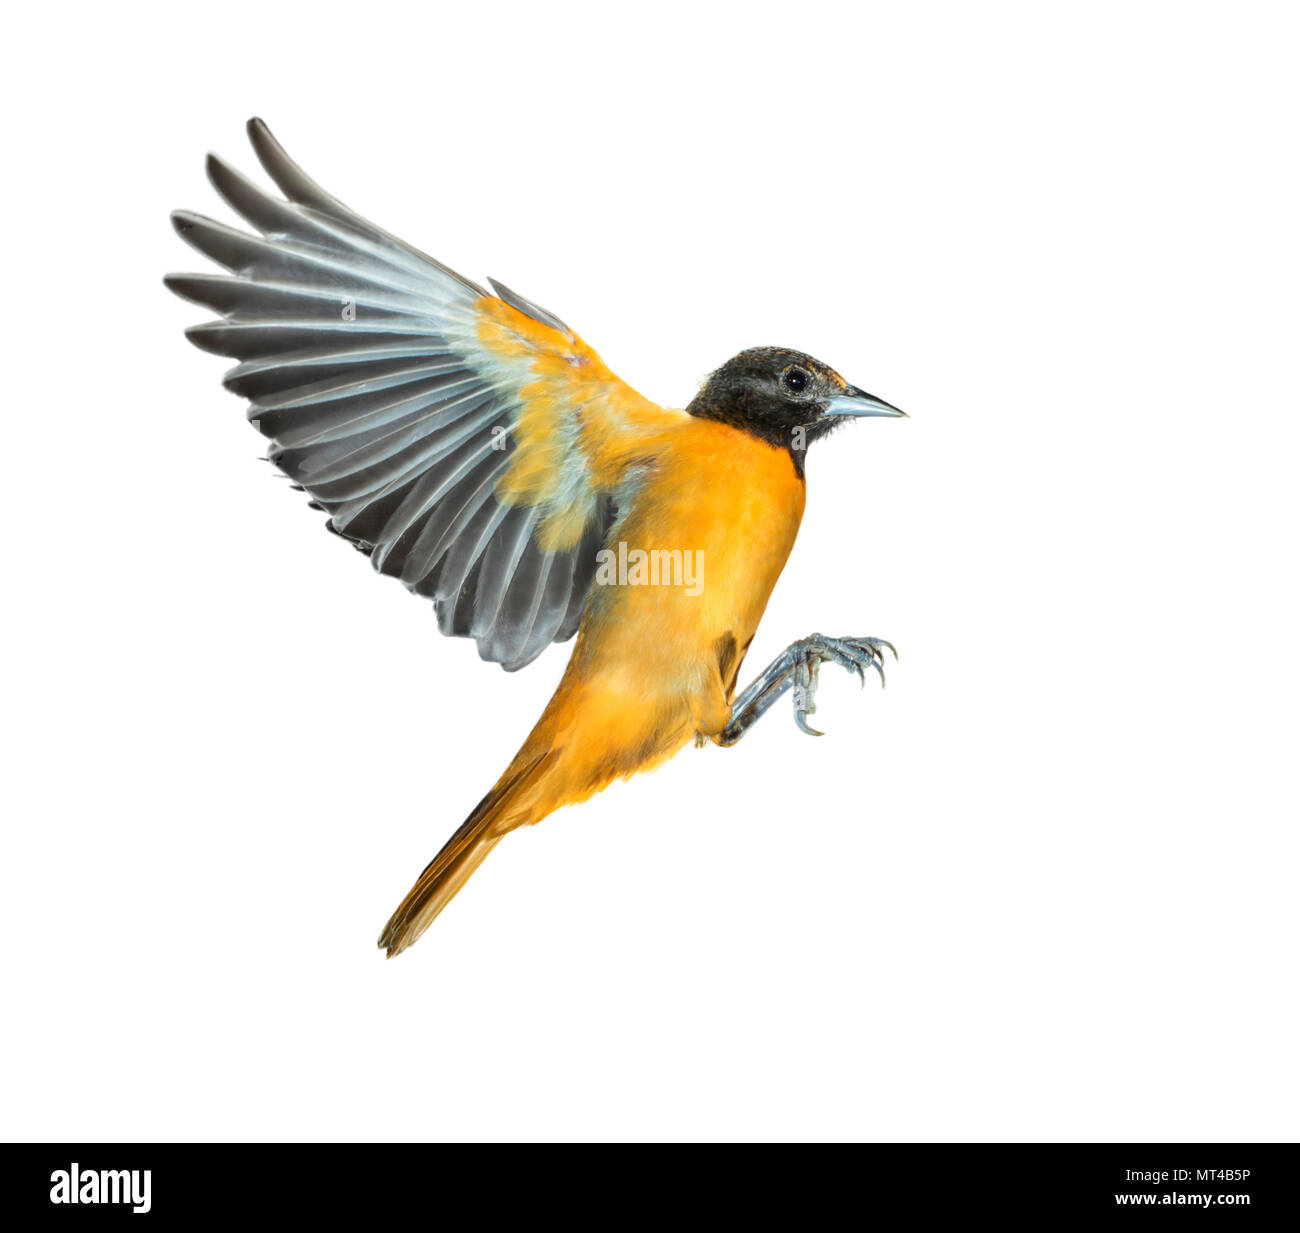 Male Baltimore oriole (Icterus galbula) flying, isolated on white background, clipping path attached. - Stock Image